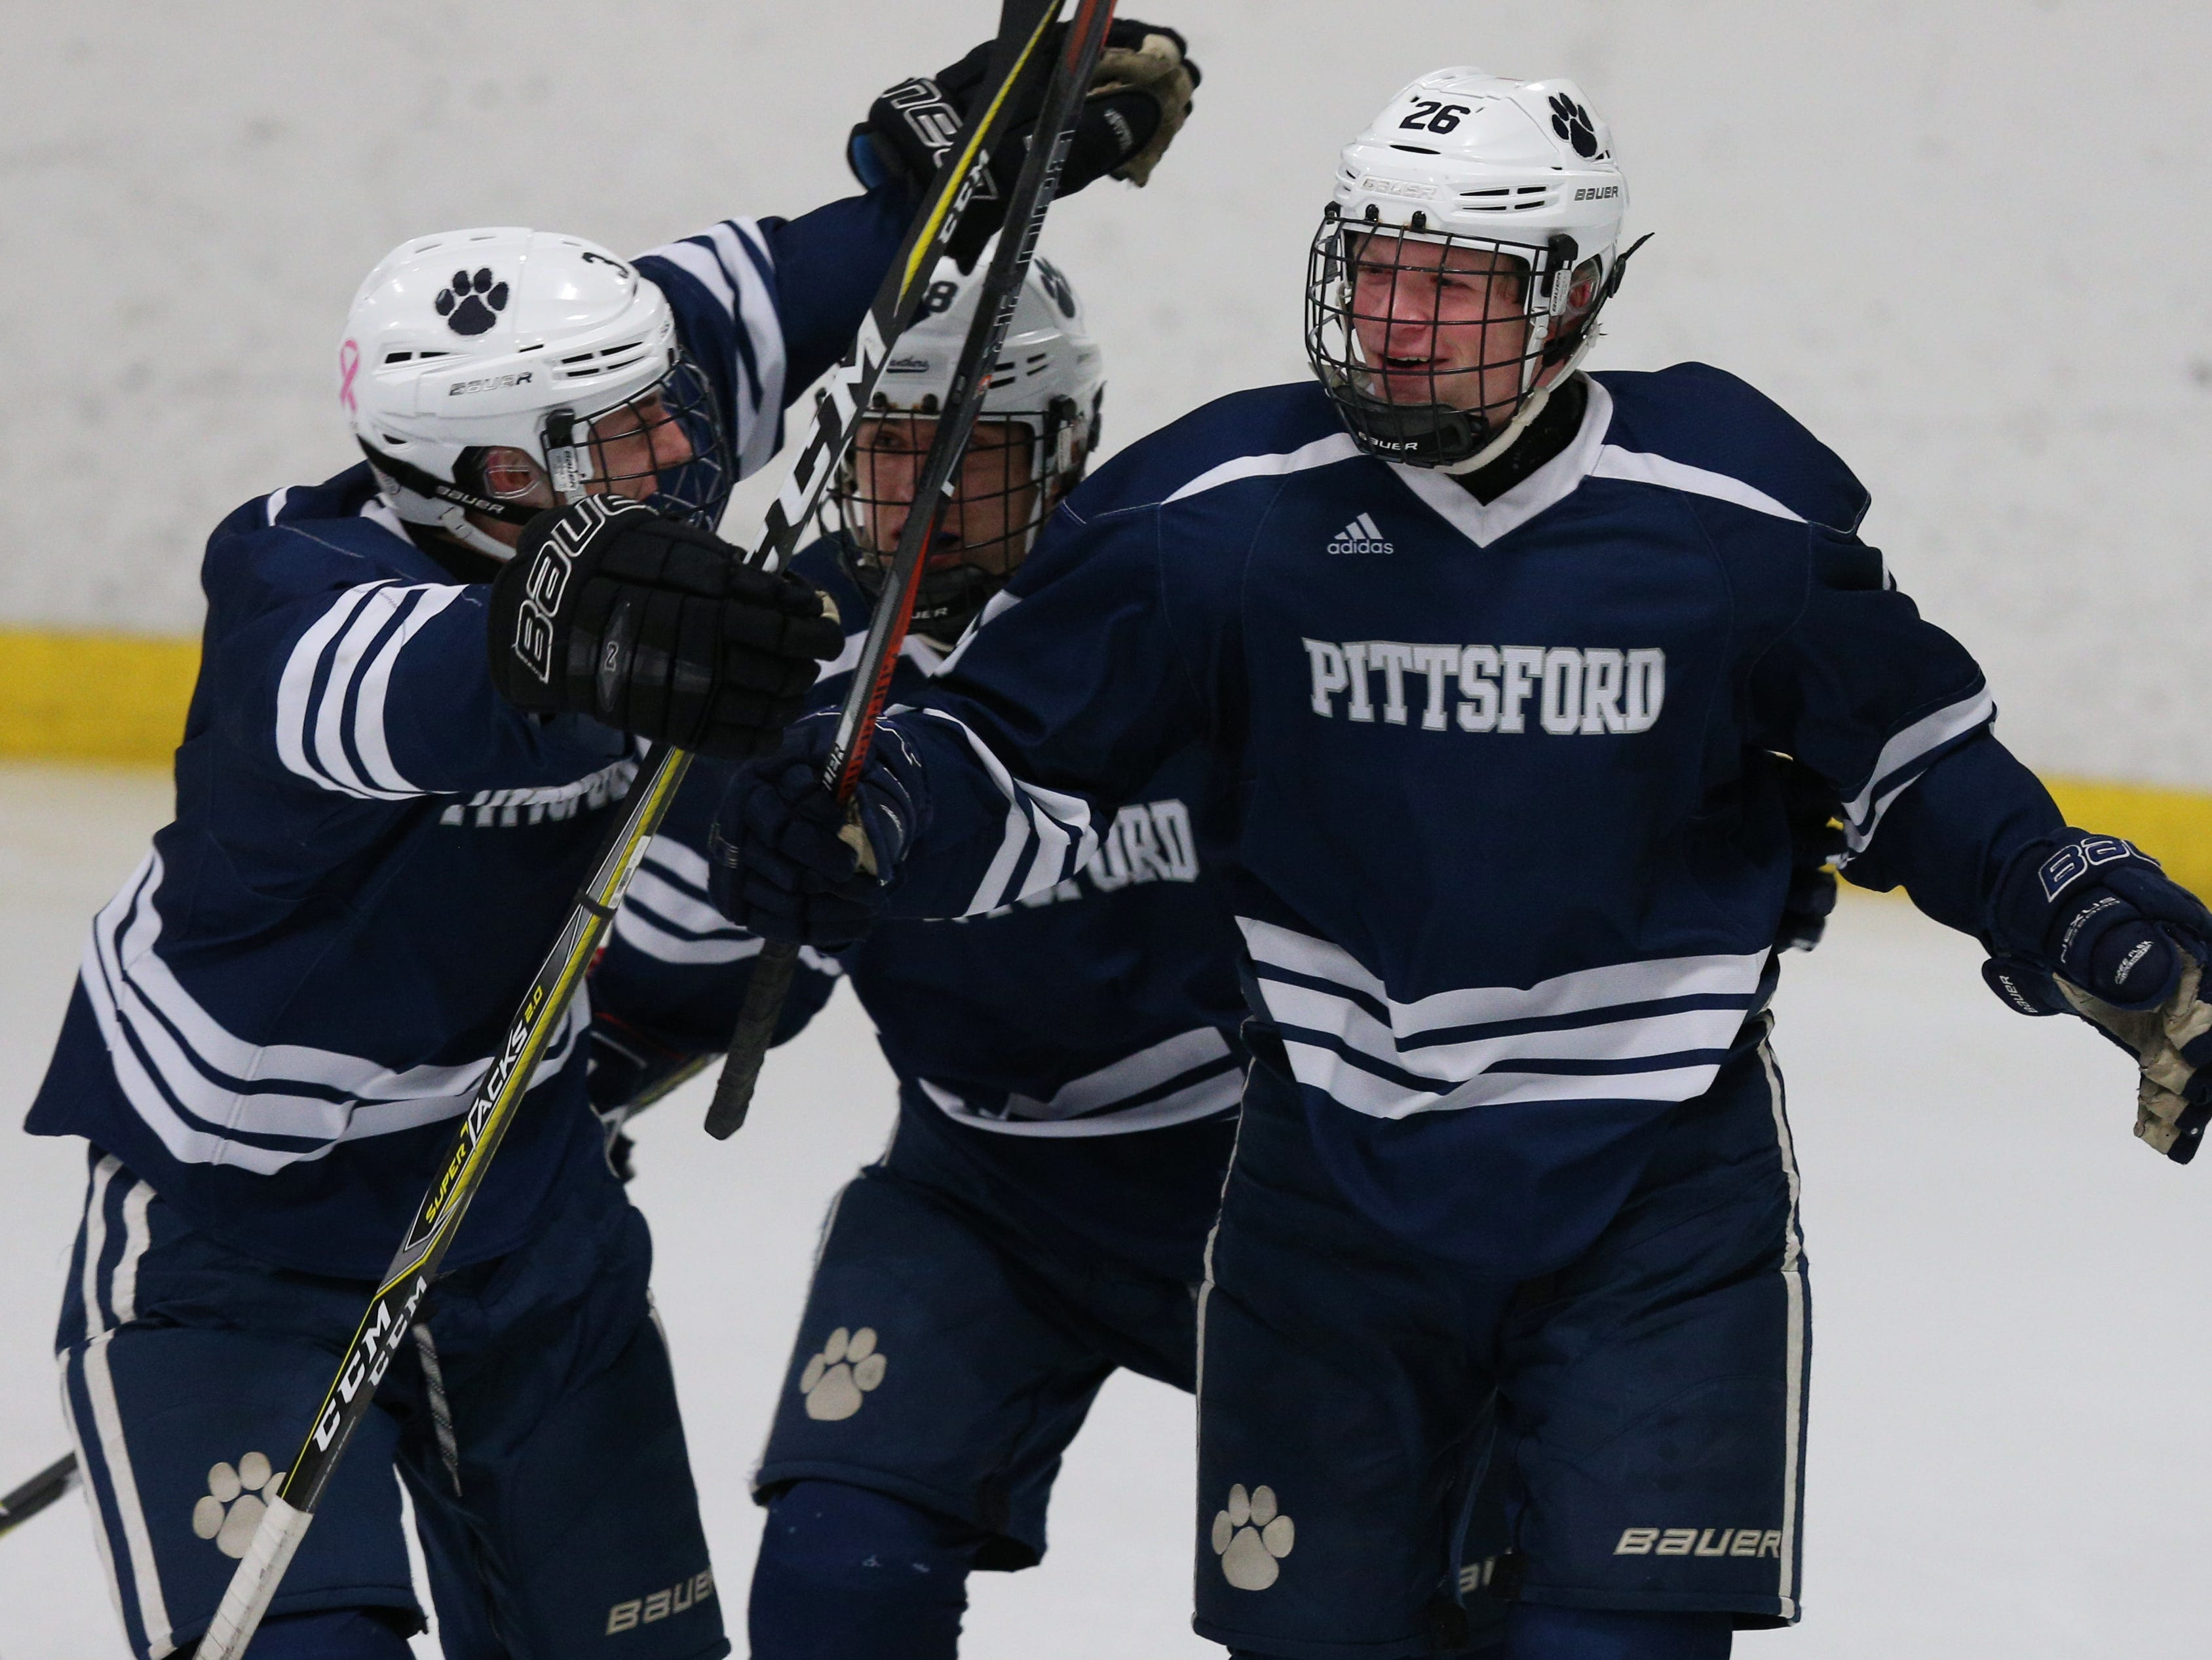 Pittsford #26 Ronin VanDamme celebrates his goal on Victor.